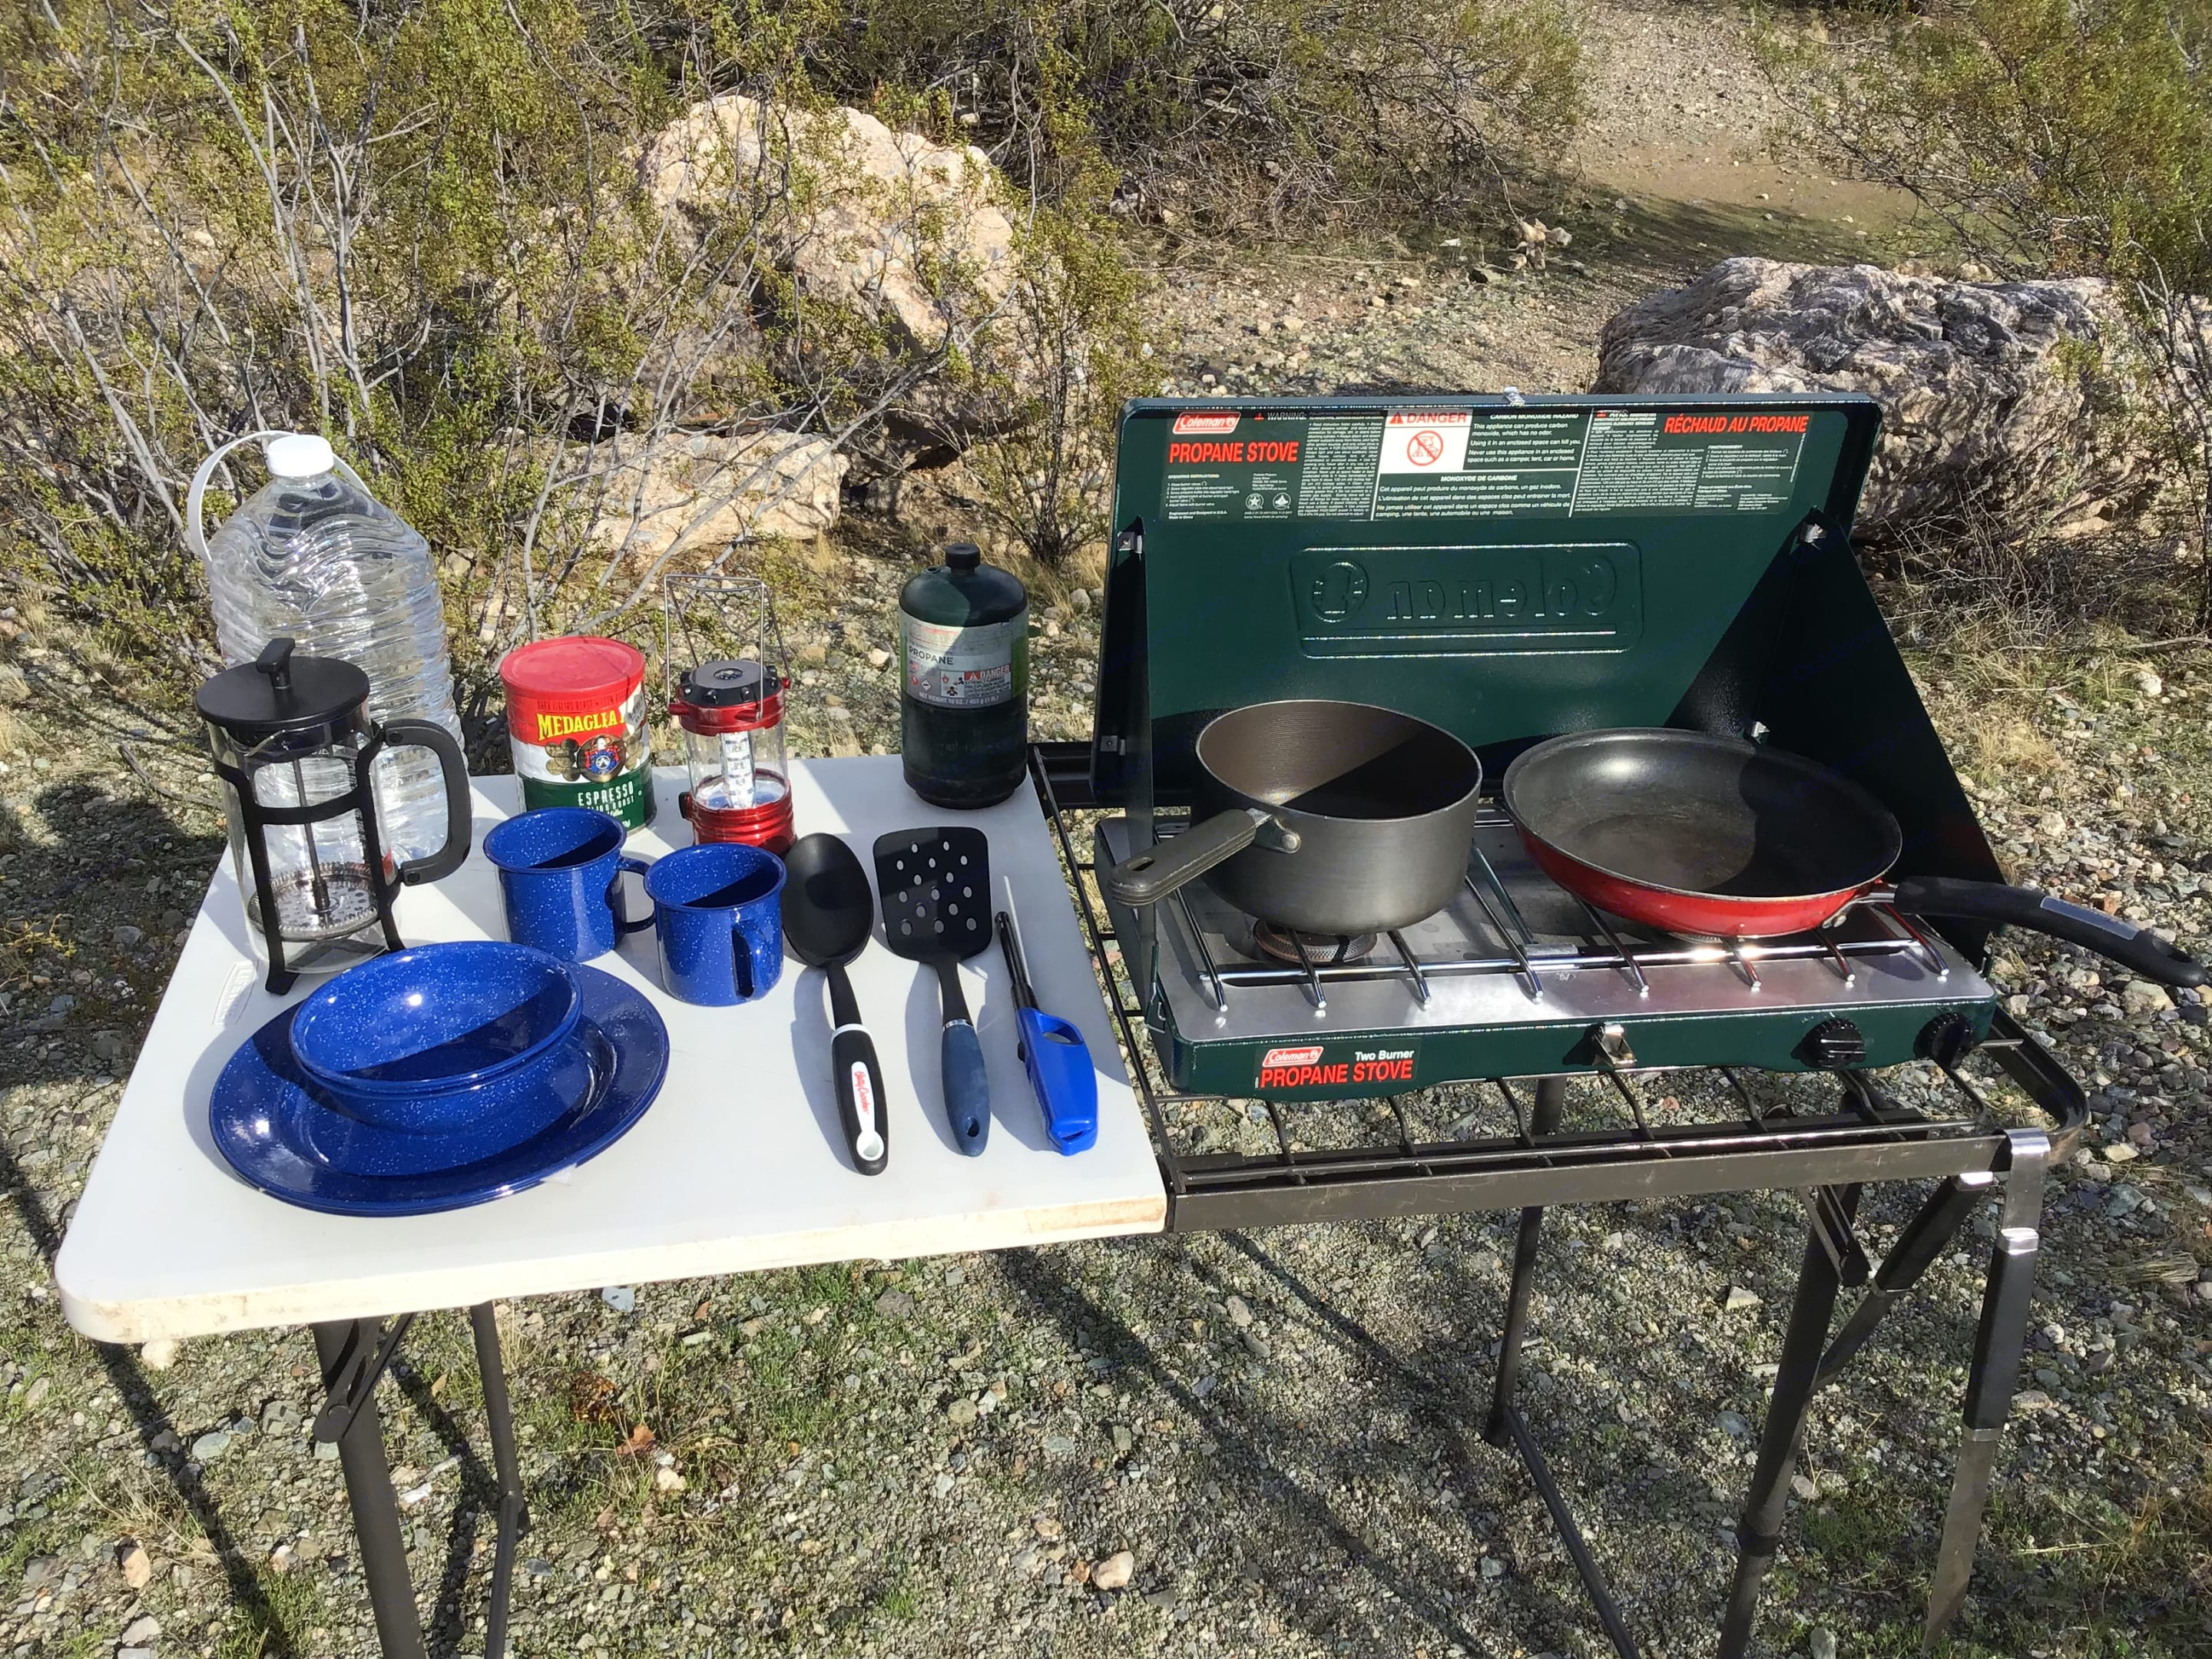 We include all the camping gear you need for your trip! (Comprehensive list of gear on our description page). Ford Campervan Expedition Adventure 4x4 Camper Van Conversion 2005